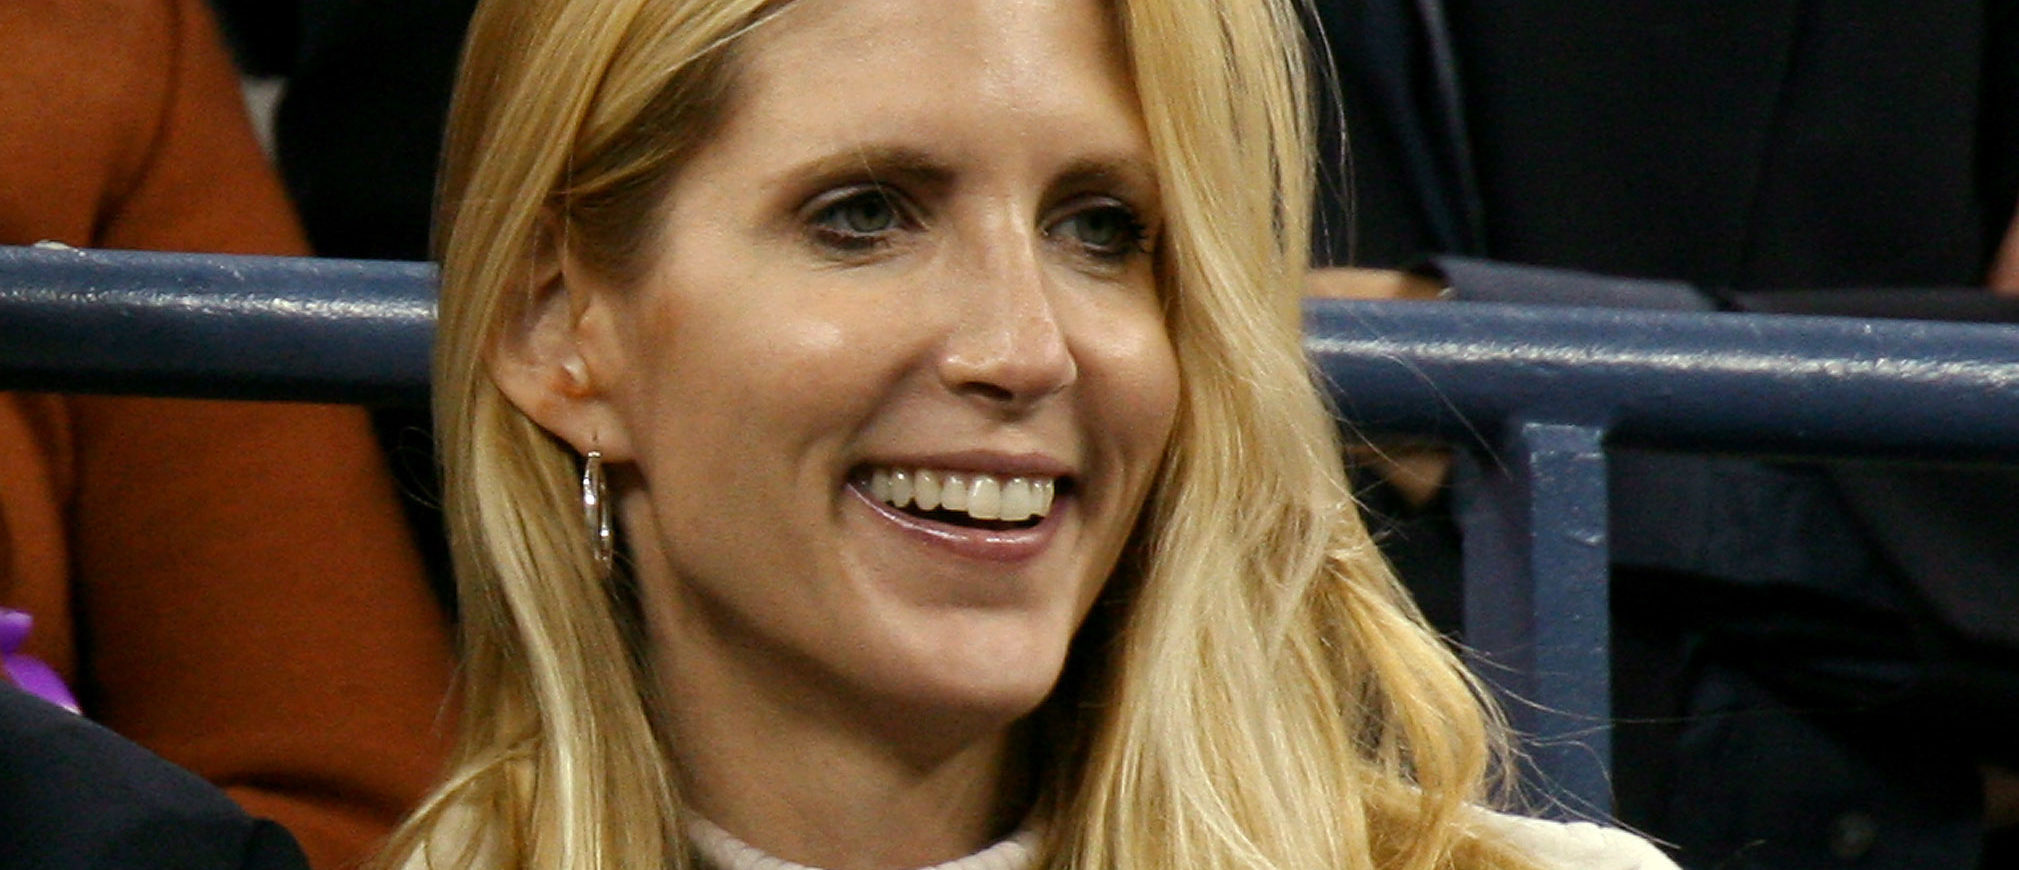 Conservative commentator Ann Coulter watches play at the U.S. Open tennis tournament in New York September 4, 2006. REUTERS/Jeff Zelevansky (UNITED STATES) - GM1DTKUGGQAA